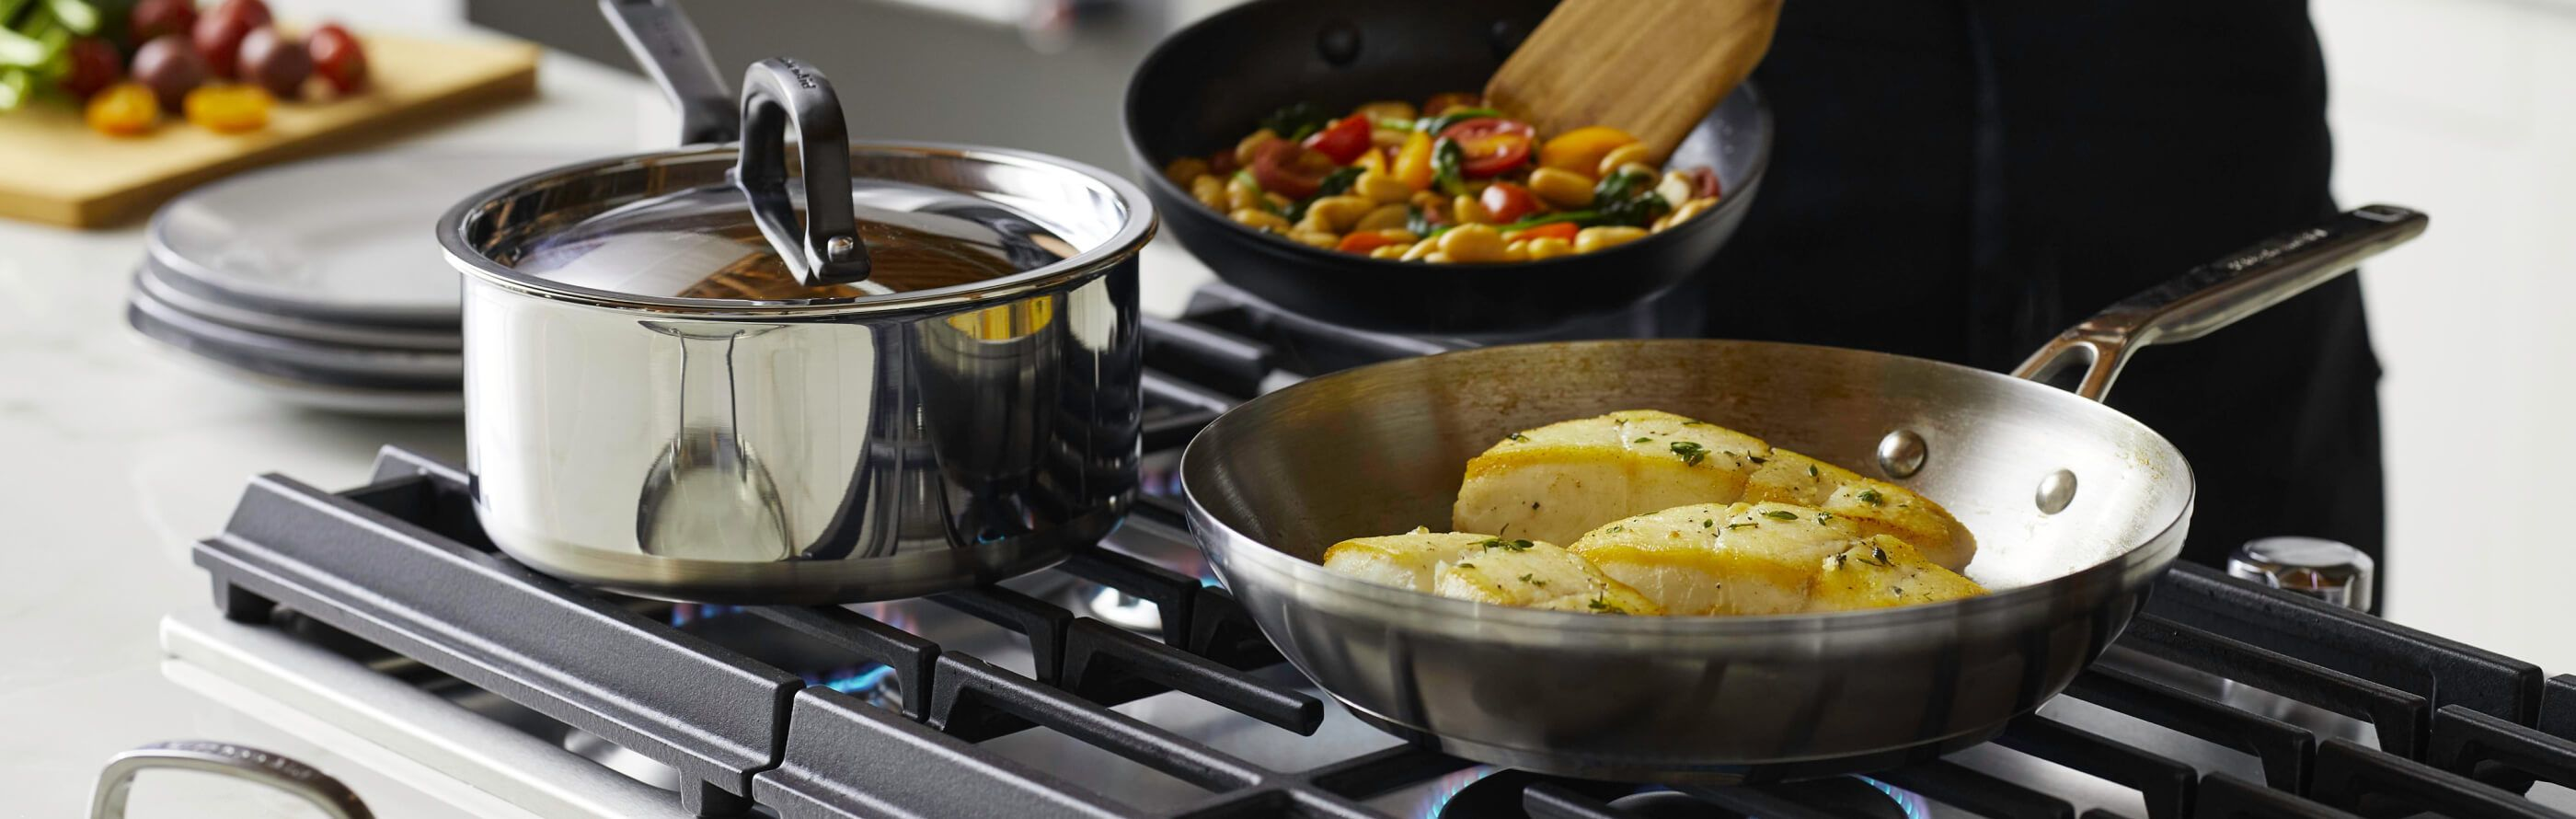 KitchenAid® Cookware being used over a stove.